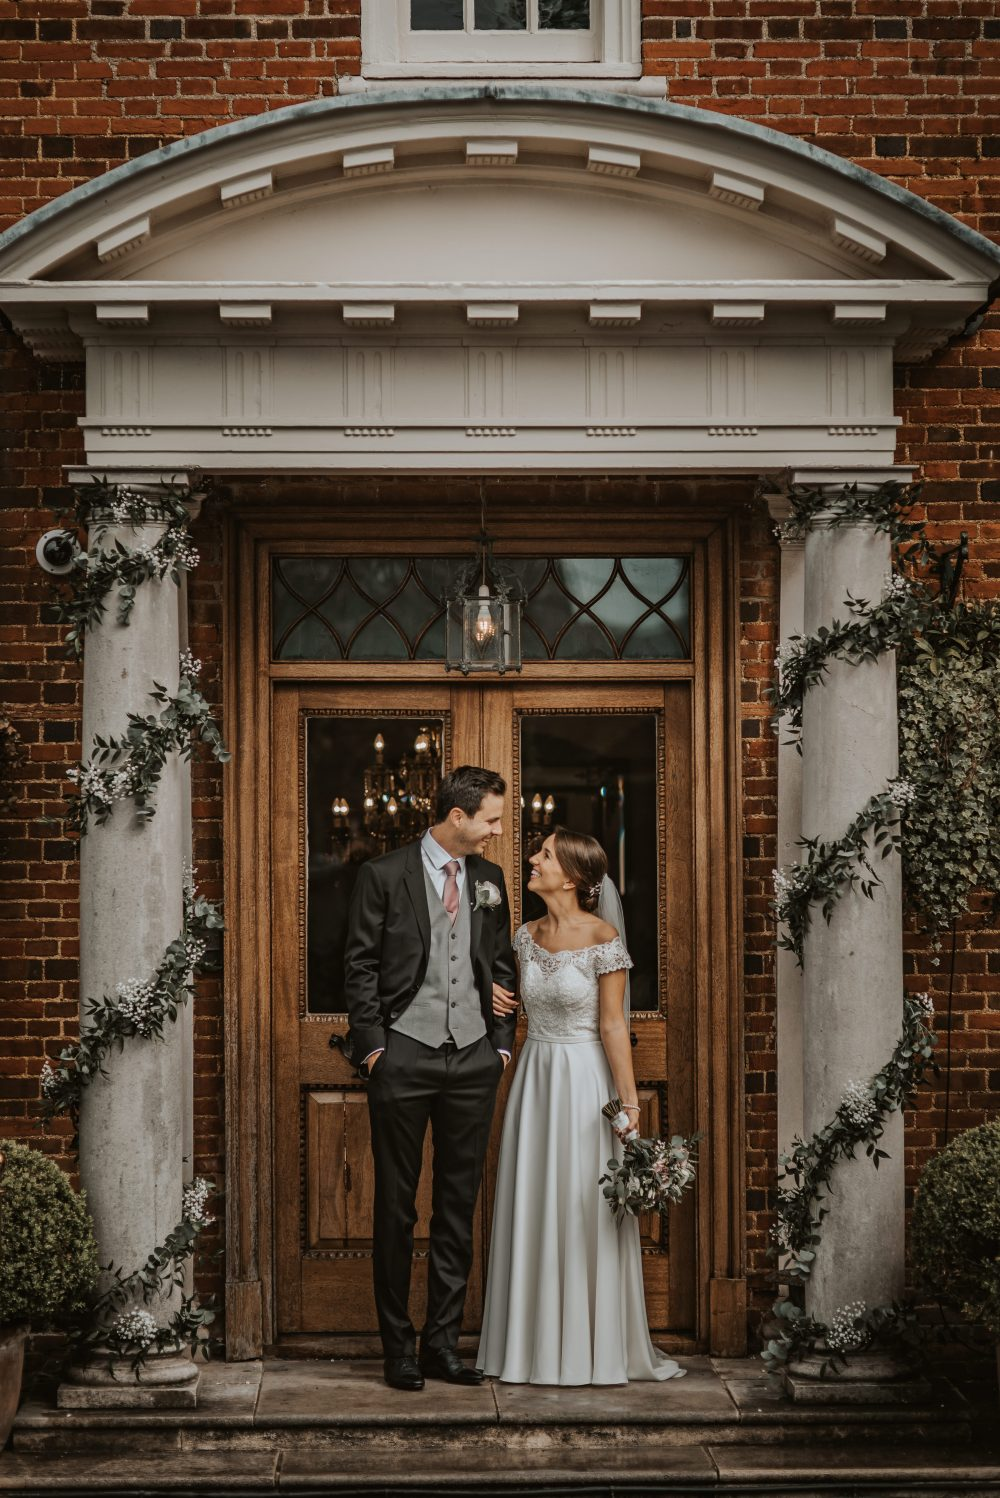 The newlyweds outside their Essex wedding venue, Quendon Hall.